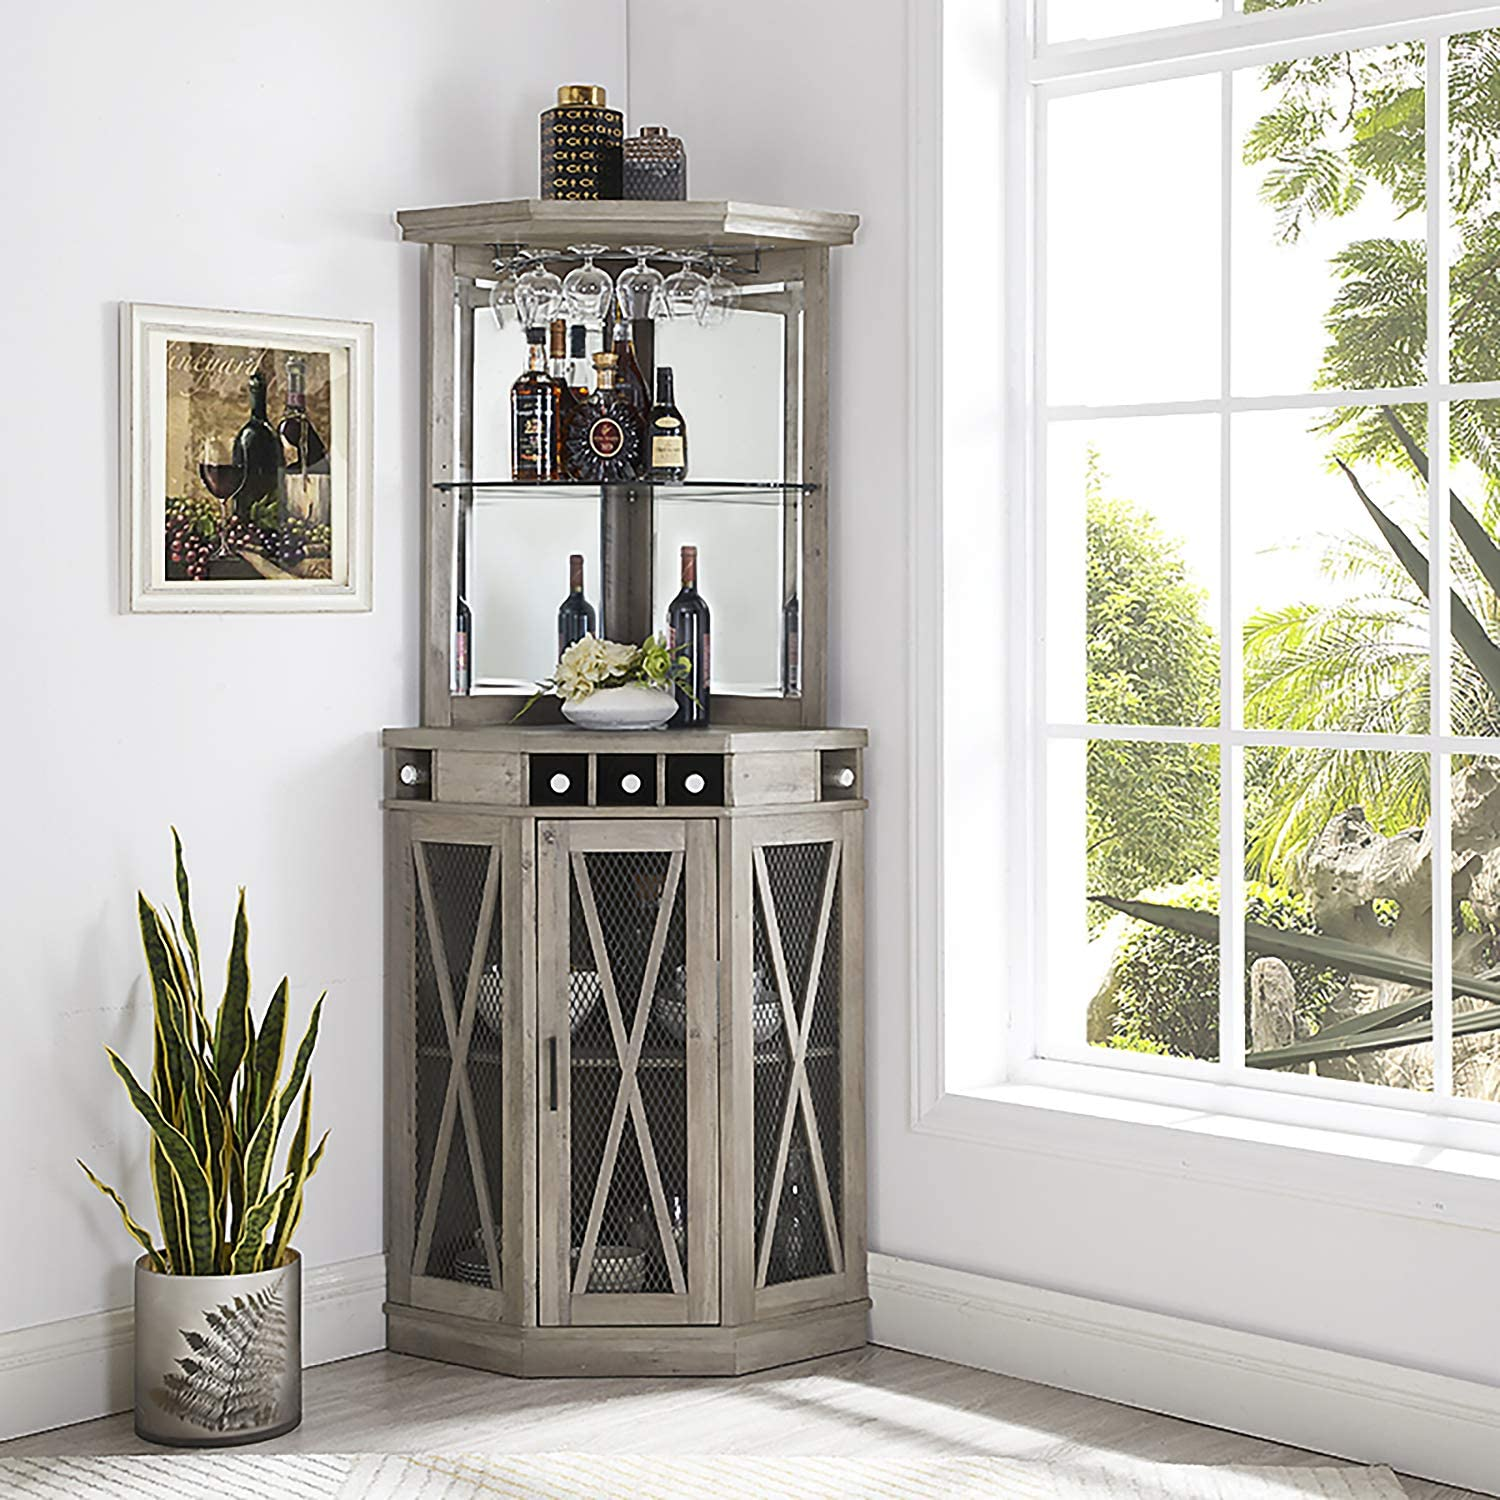 Home Source Corner Bar Unit with Built-in Wine Rack and Lower Cabinet (Stone Grey)